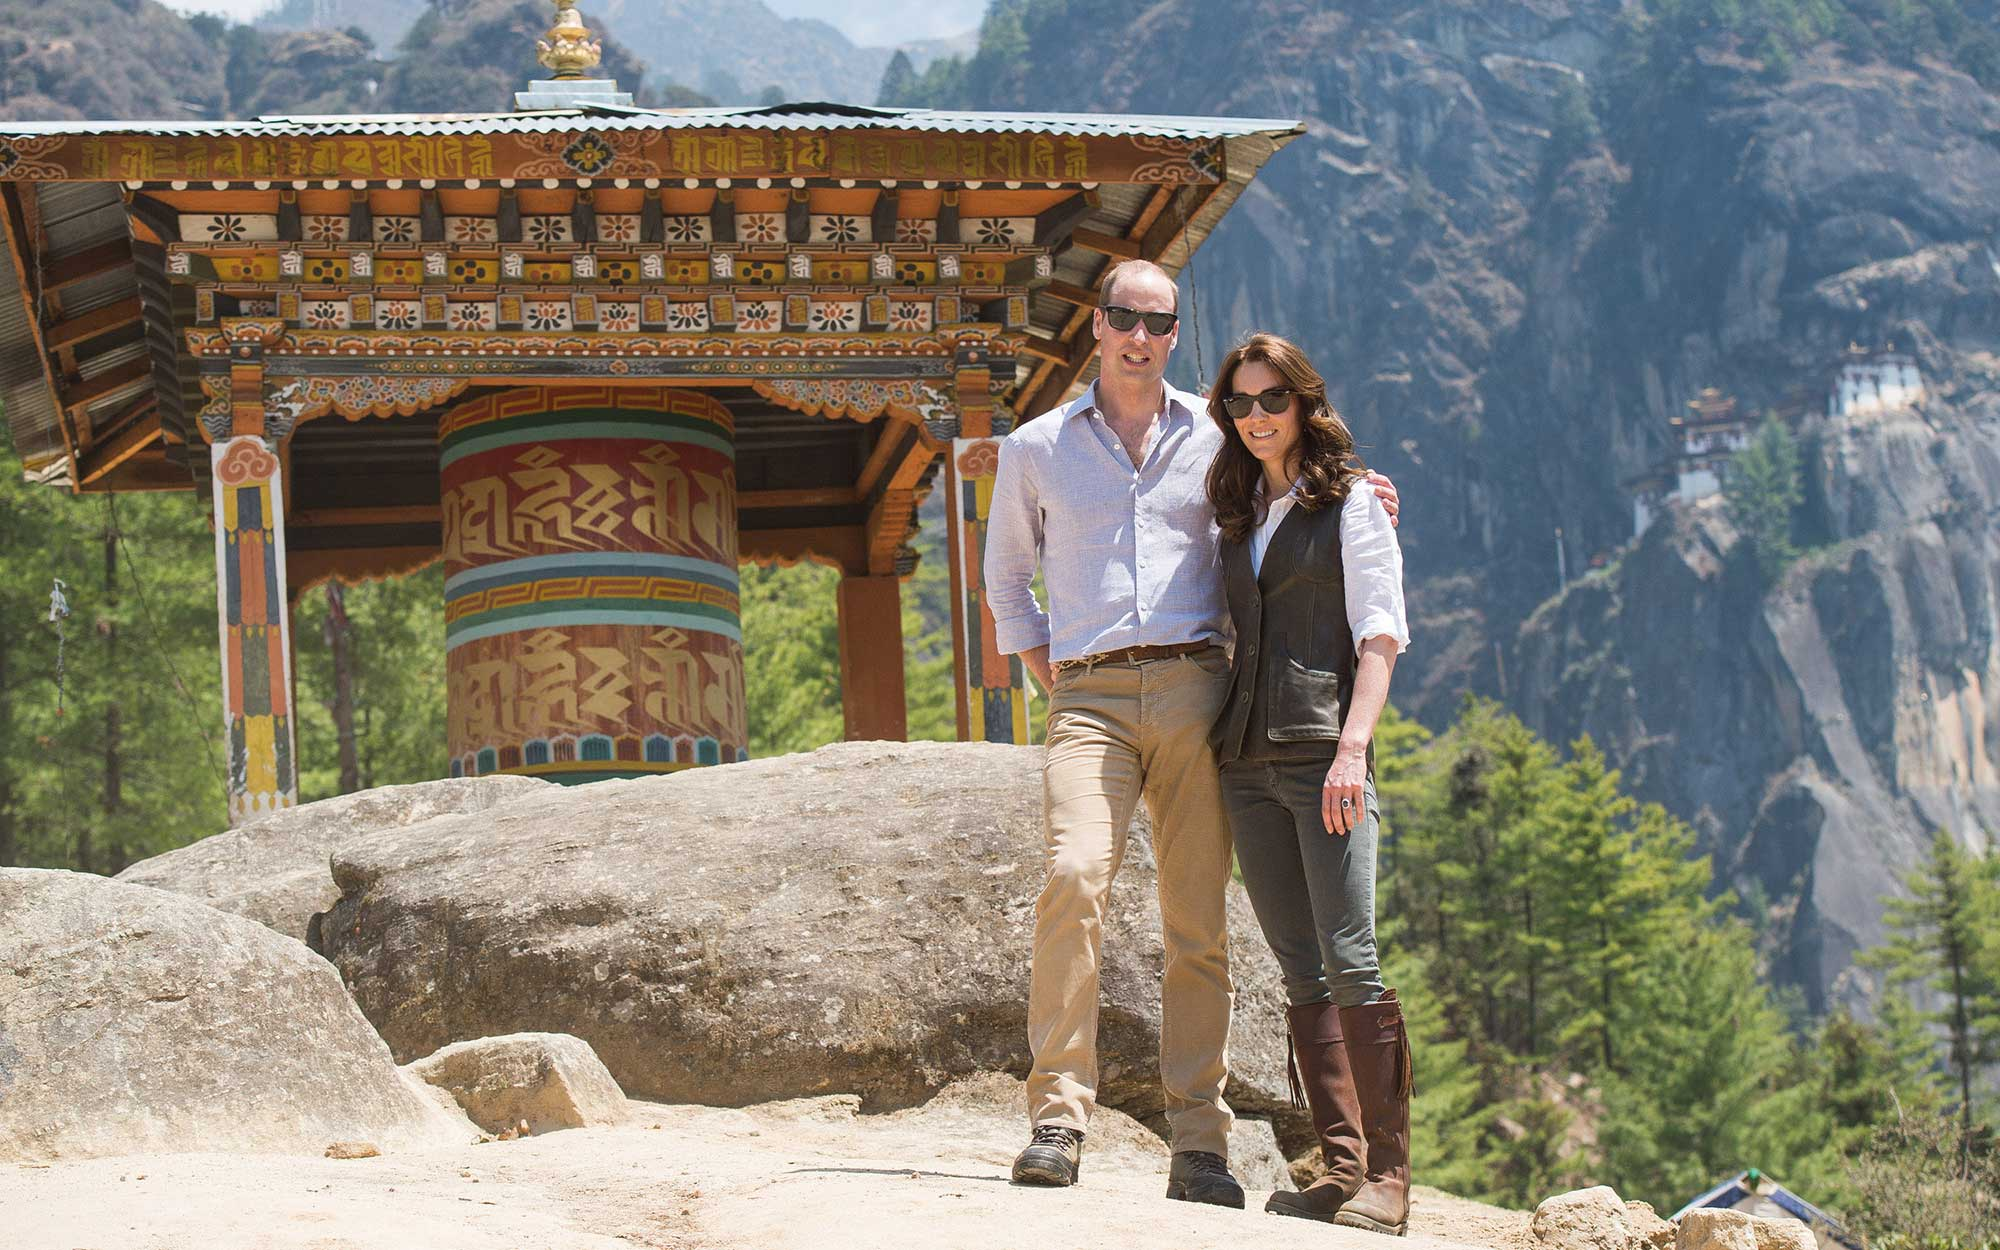 Prince William and Kate Middleton Embark on their Royal Tour of India and Bhutan: Hiking to a Mountaintop Monastery